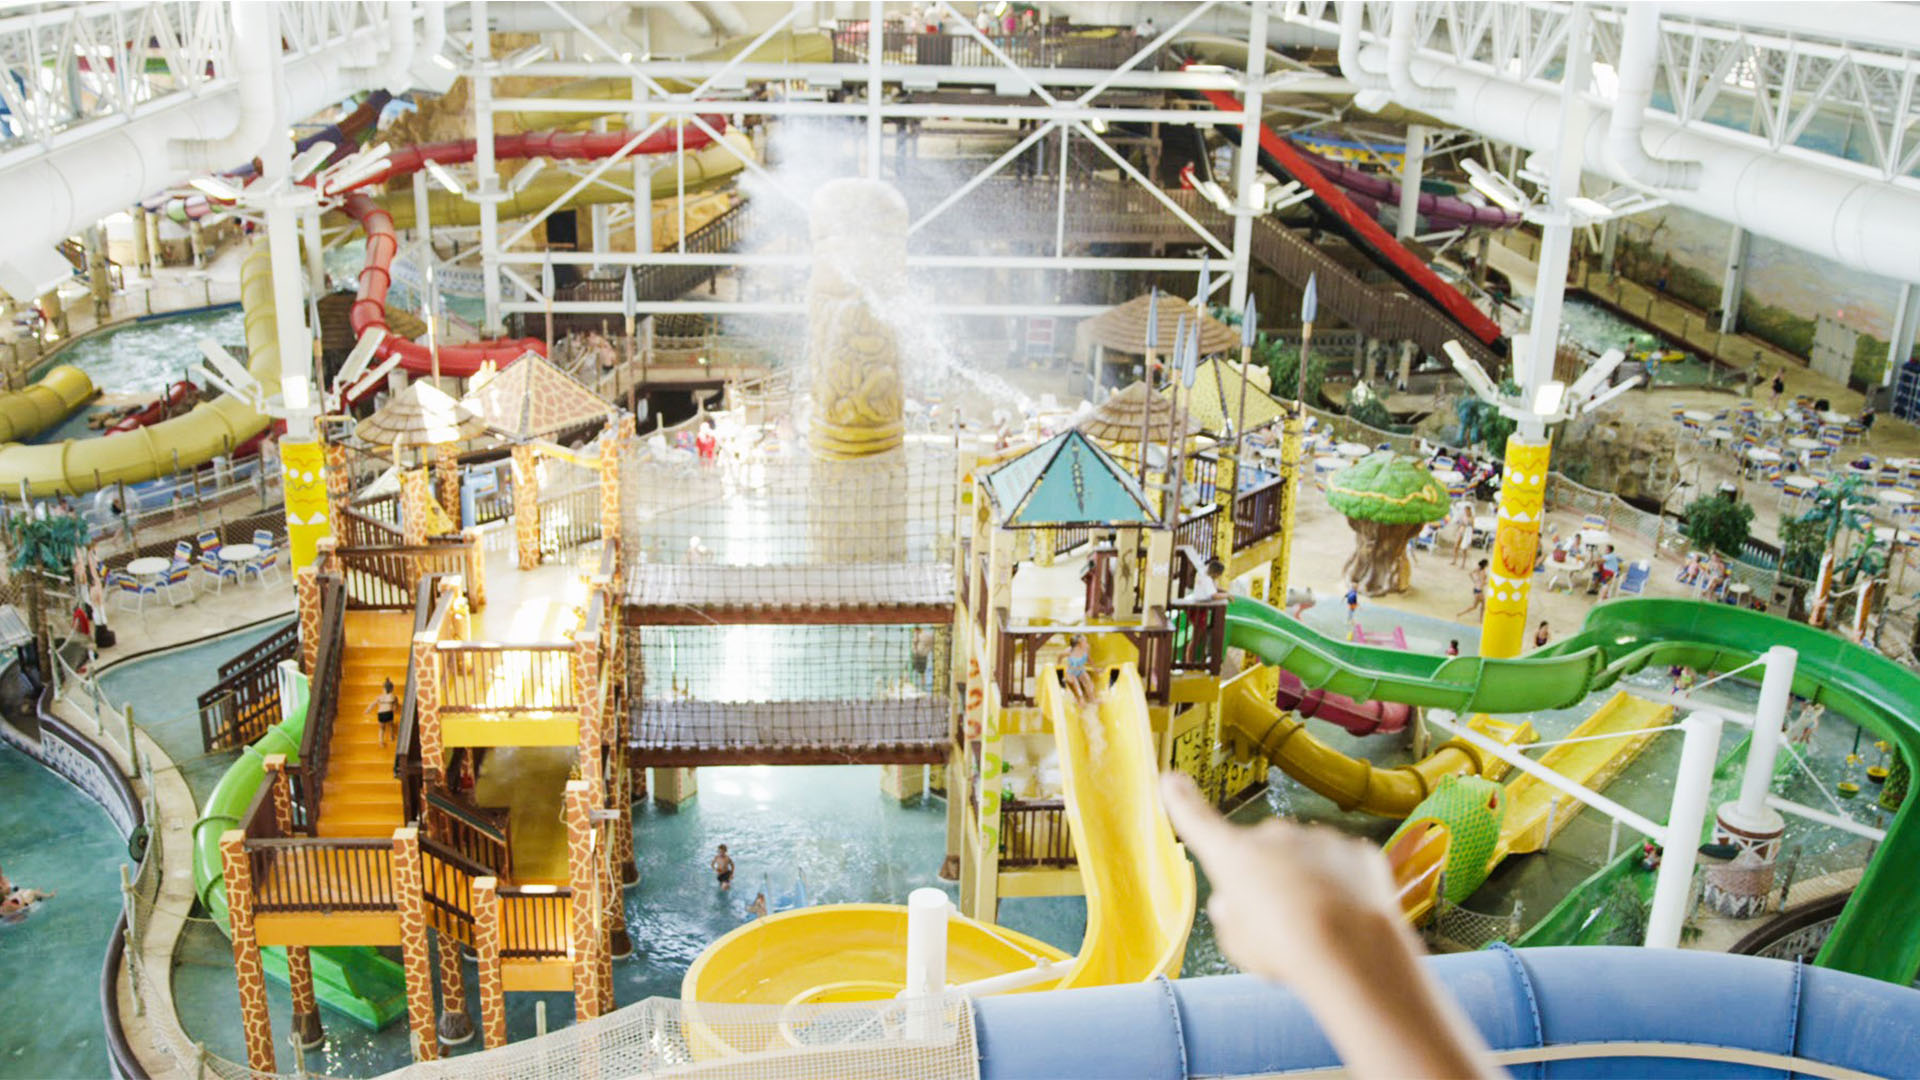 indoor Water park with multiple slides